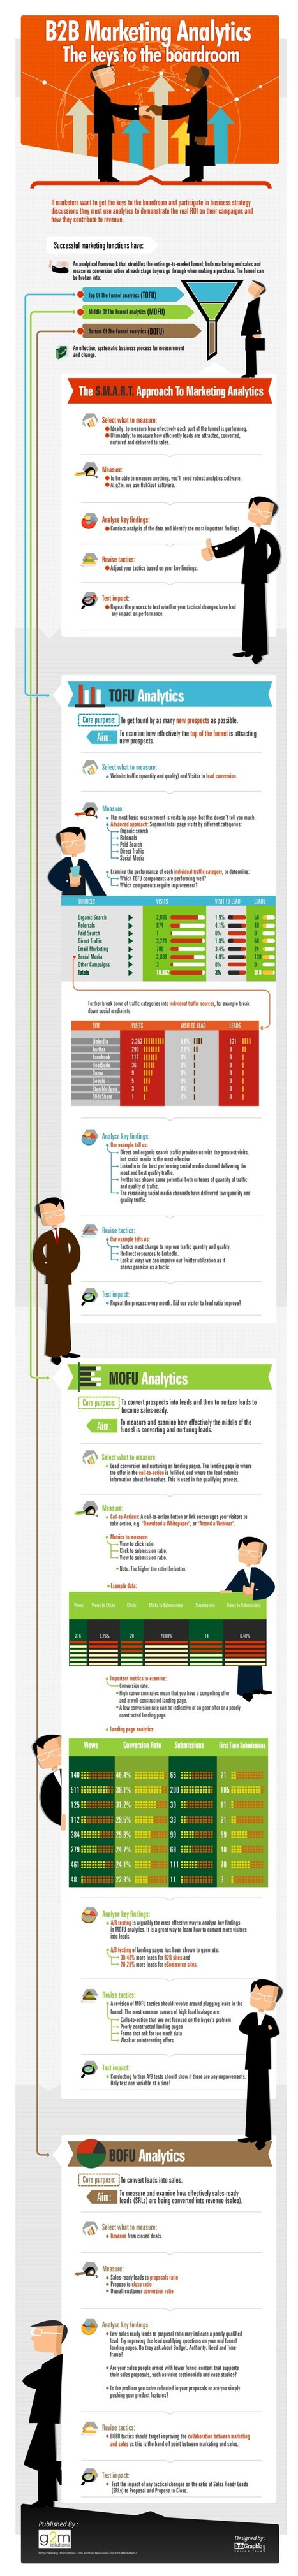 Infographic : B2B Marketing Analytics | Beyond Marketing | Scoop.it